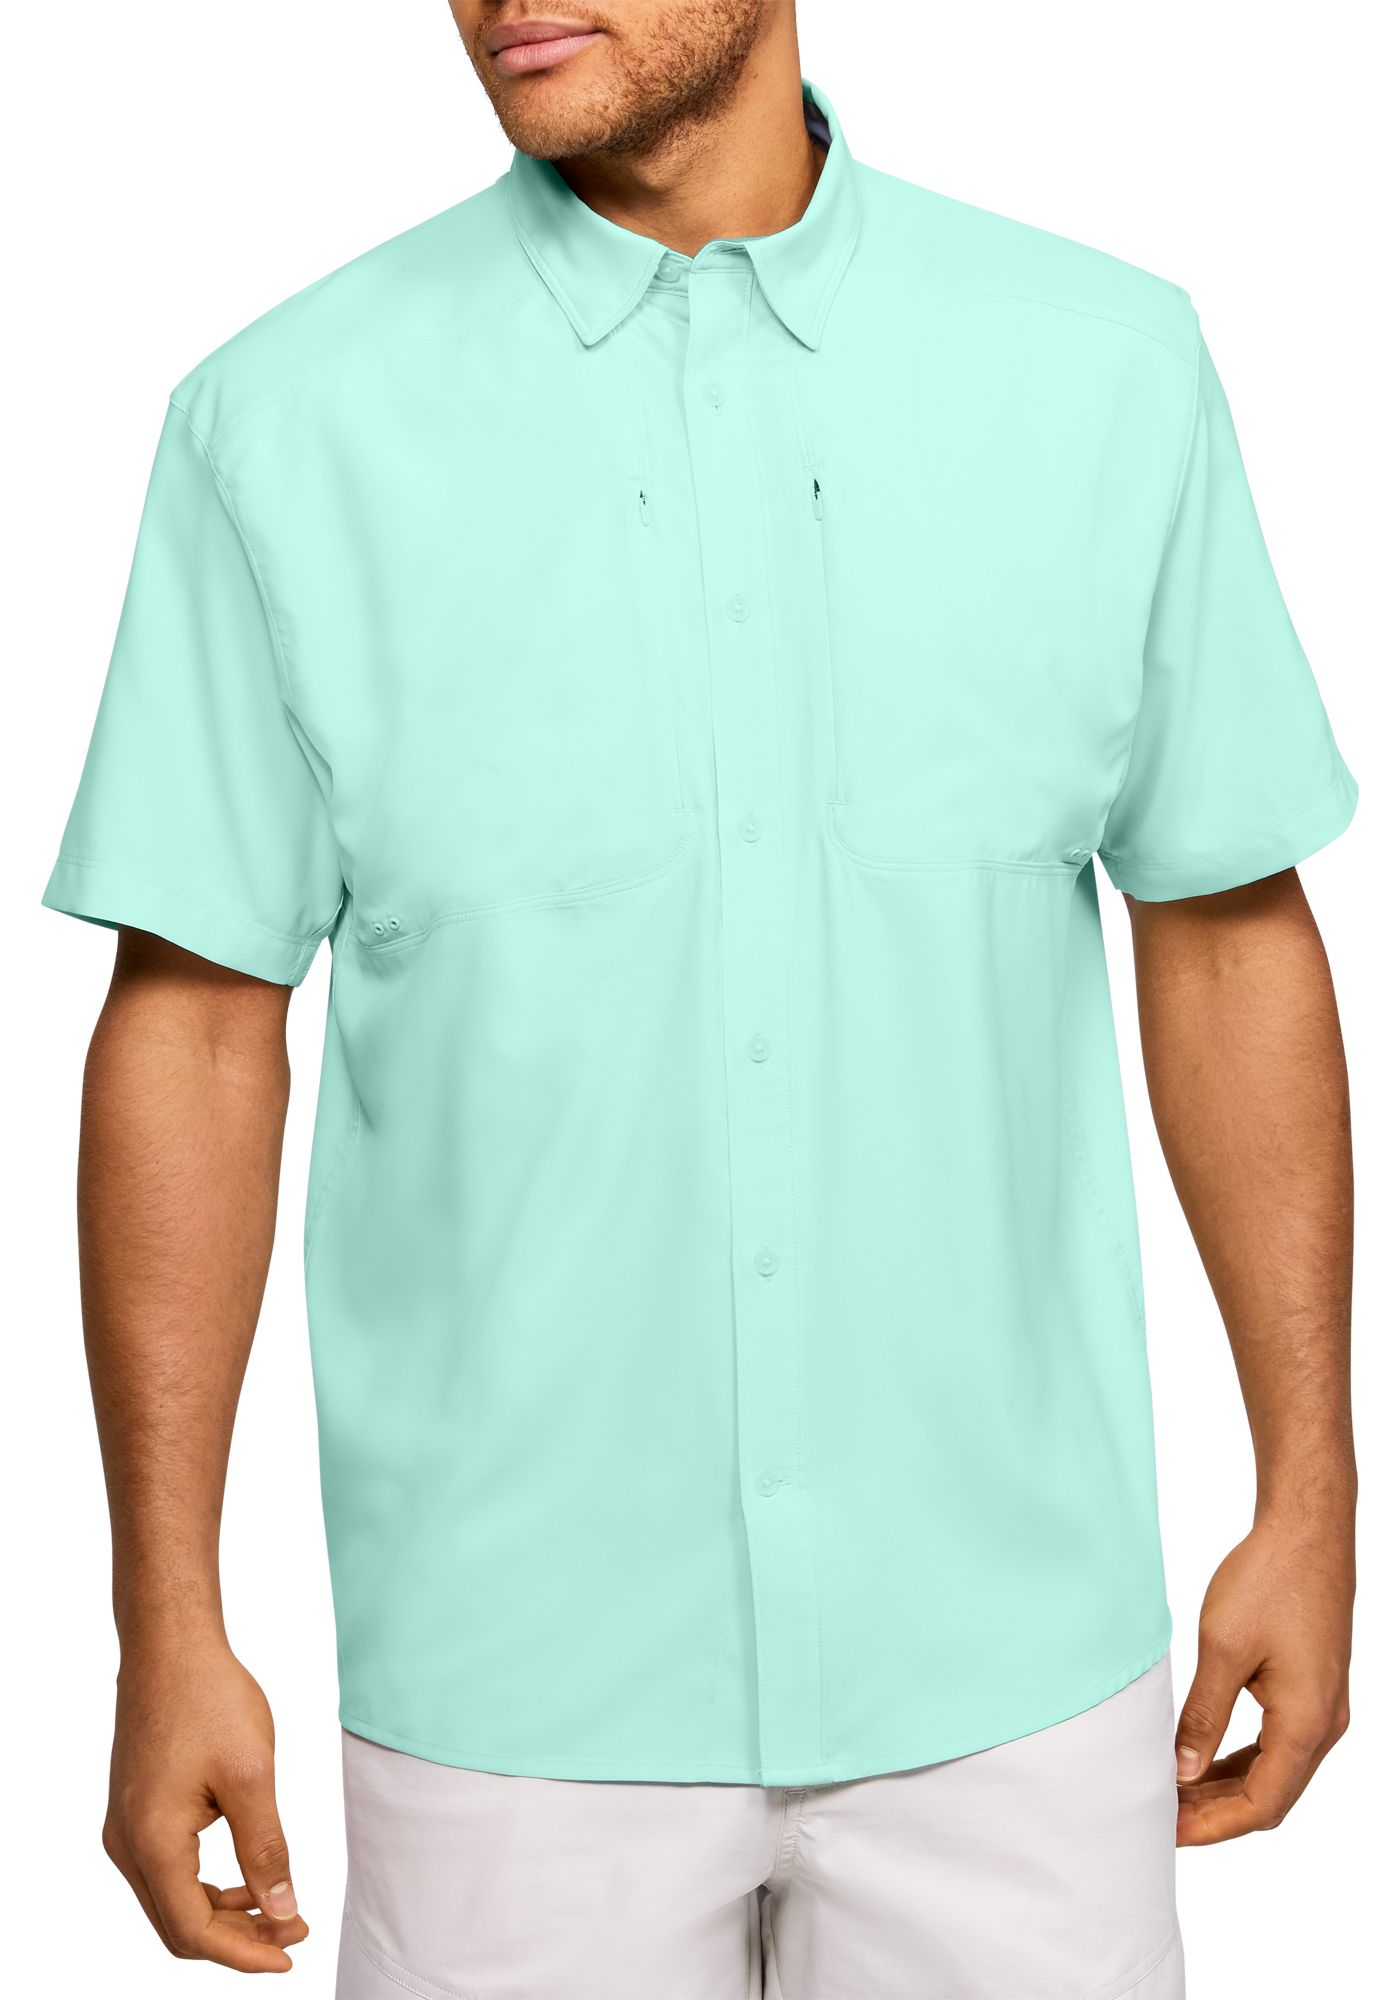 Under Armour Men's Tide Chaser 2.0 Fishing Short Sleeve Shirt (Regular and Big & Tall)